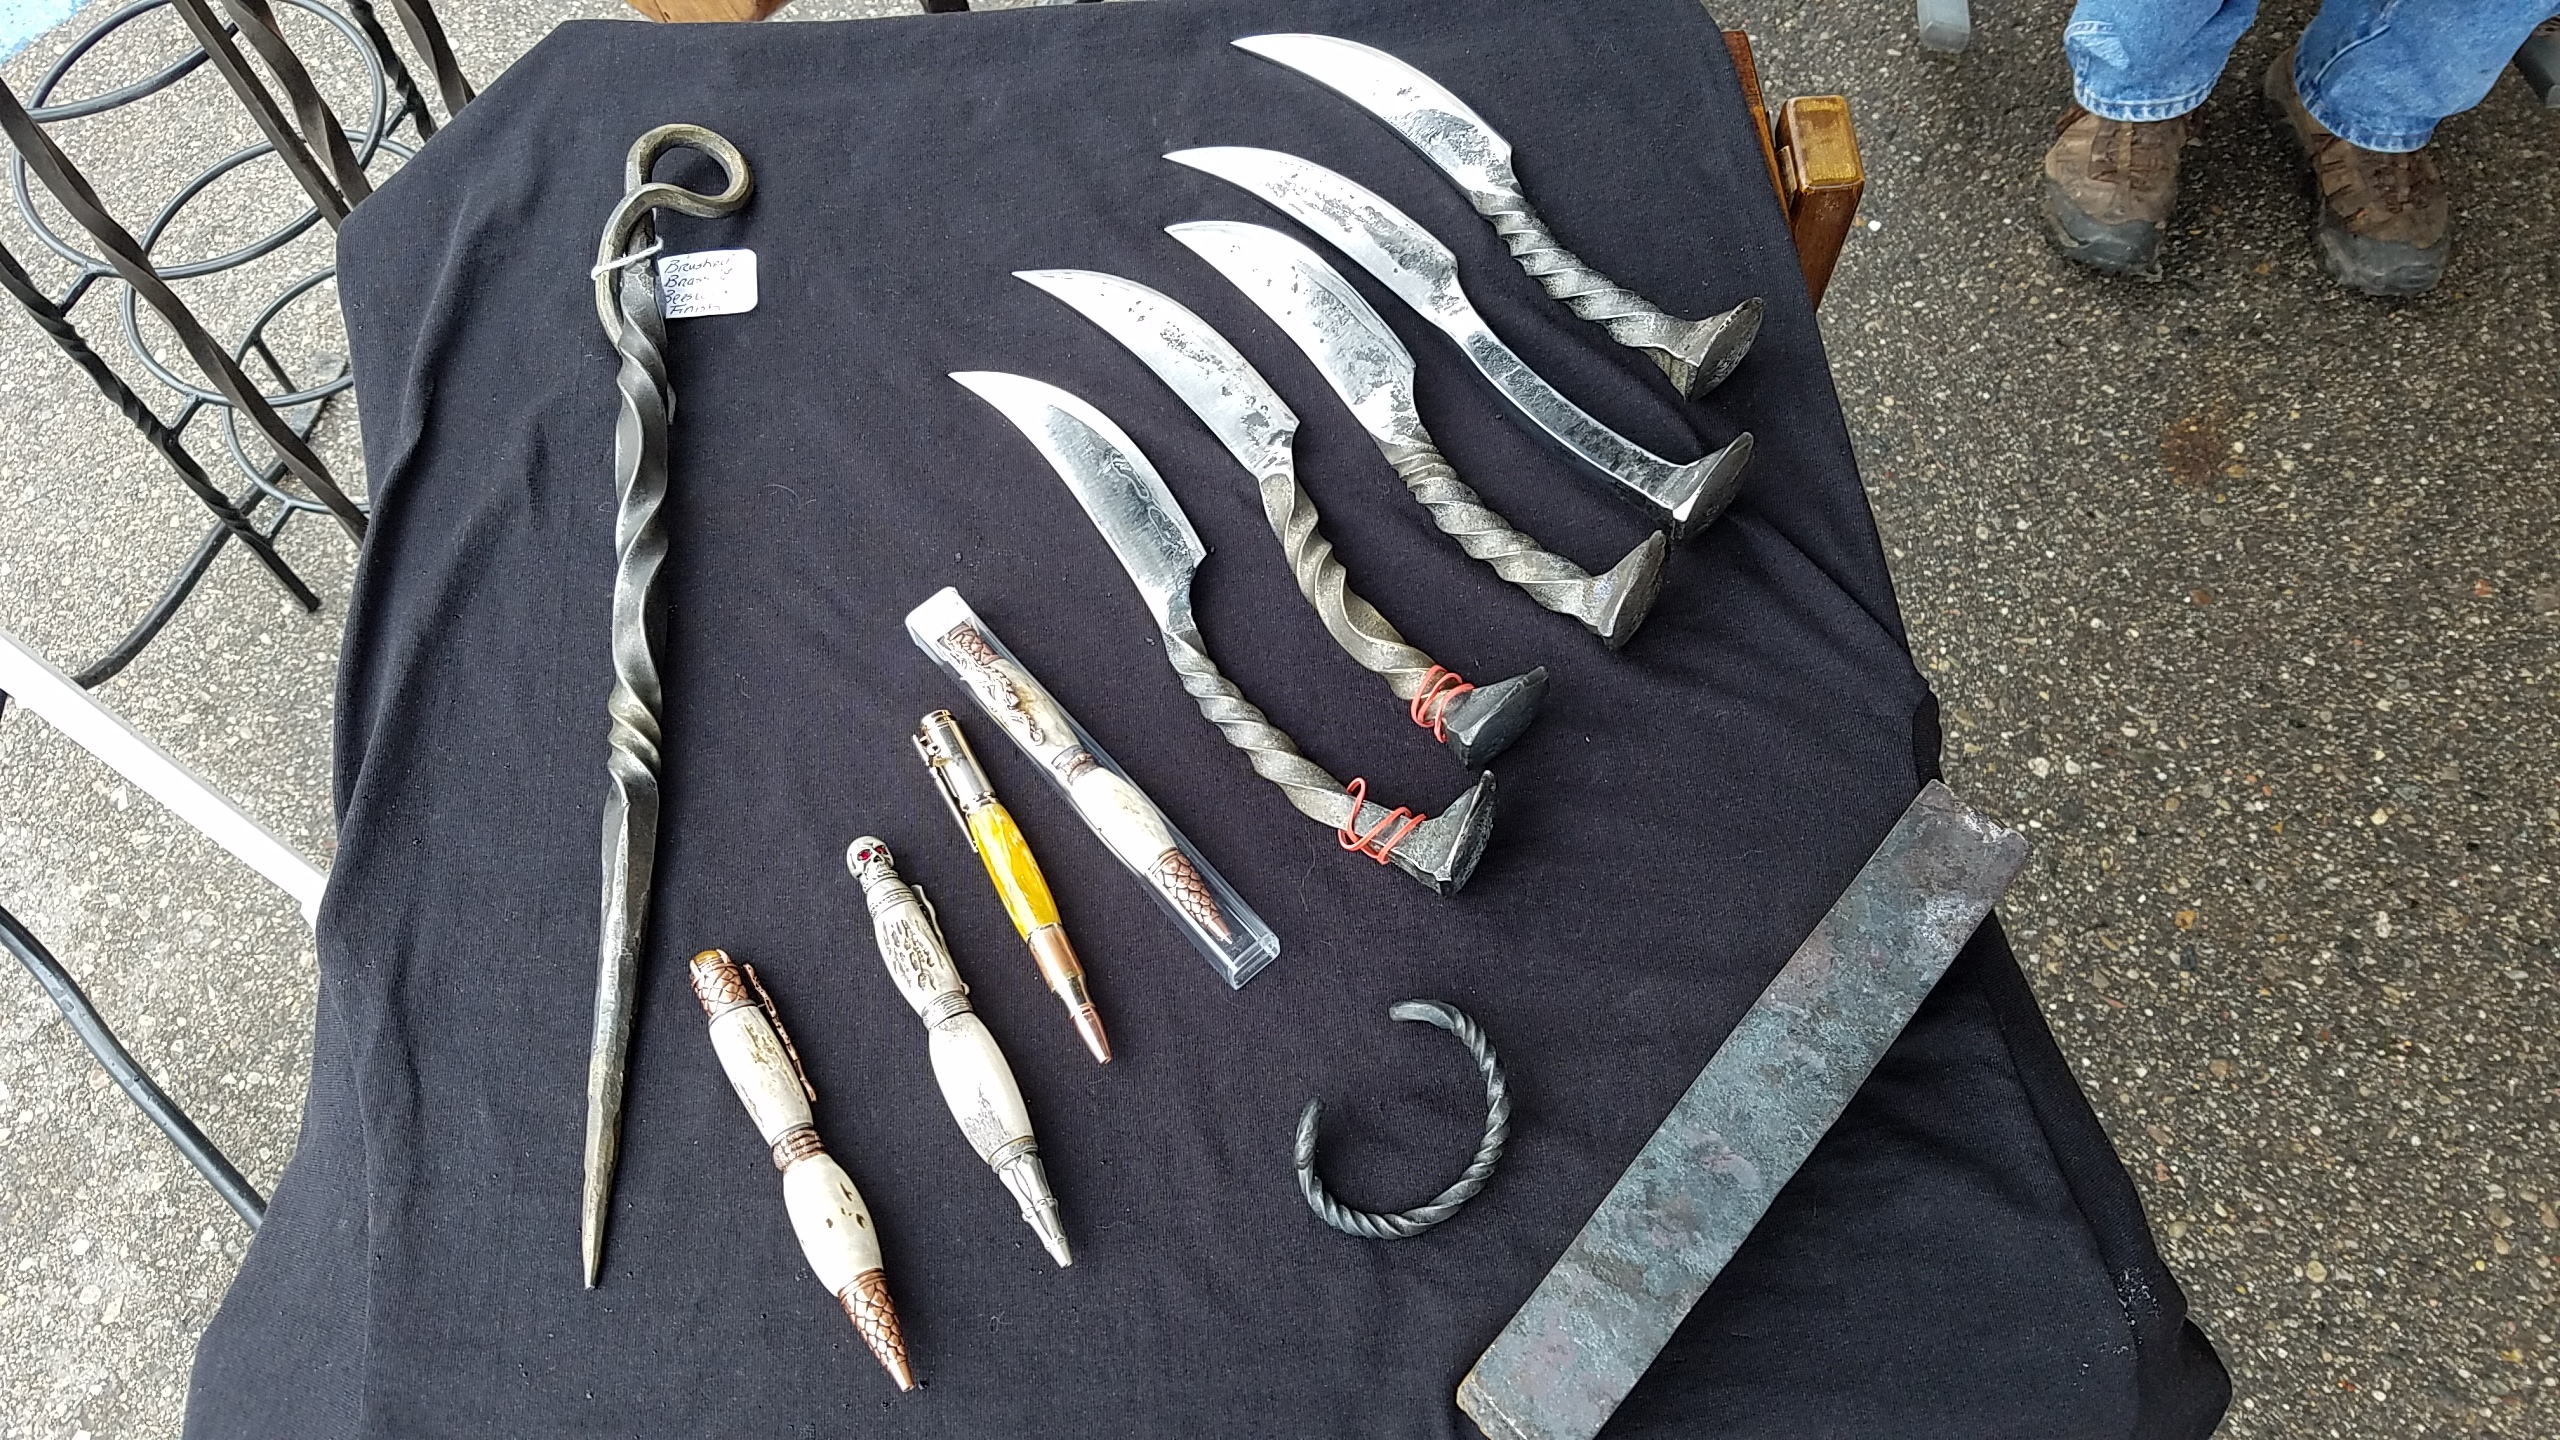 Railroad Spike Knives and pens